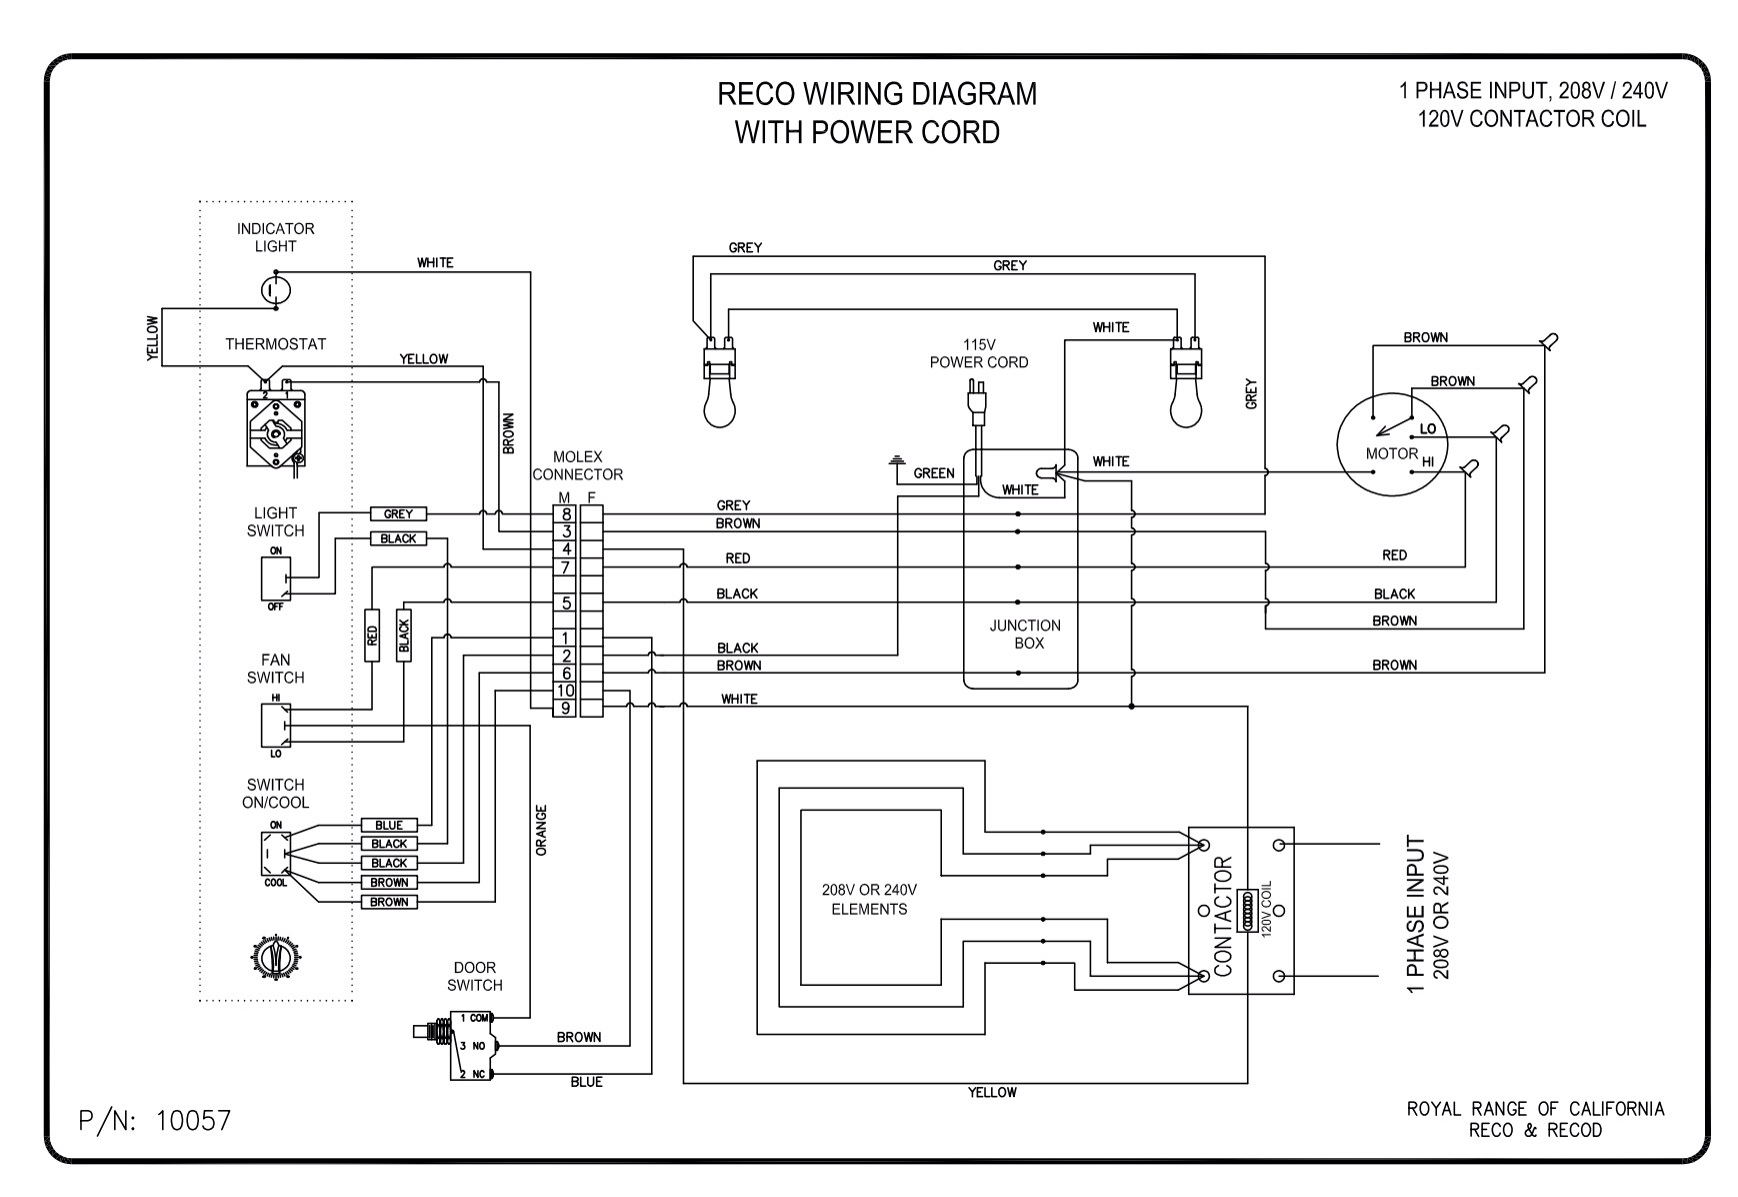 208 230 Volt Wiring Diagram Circuit Symbols Case Vac Tractor Trusted Images Gallery